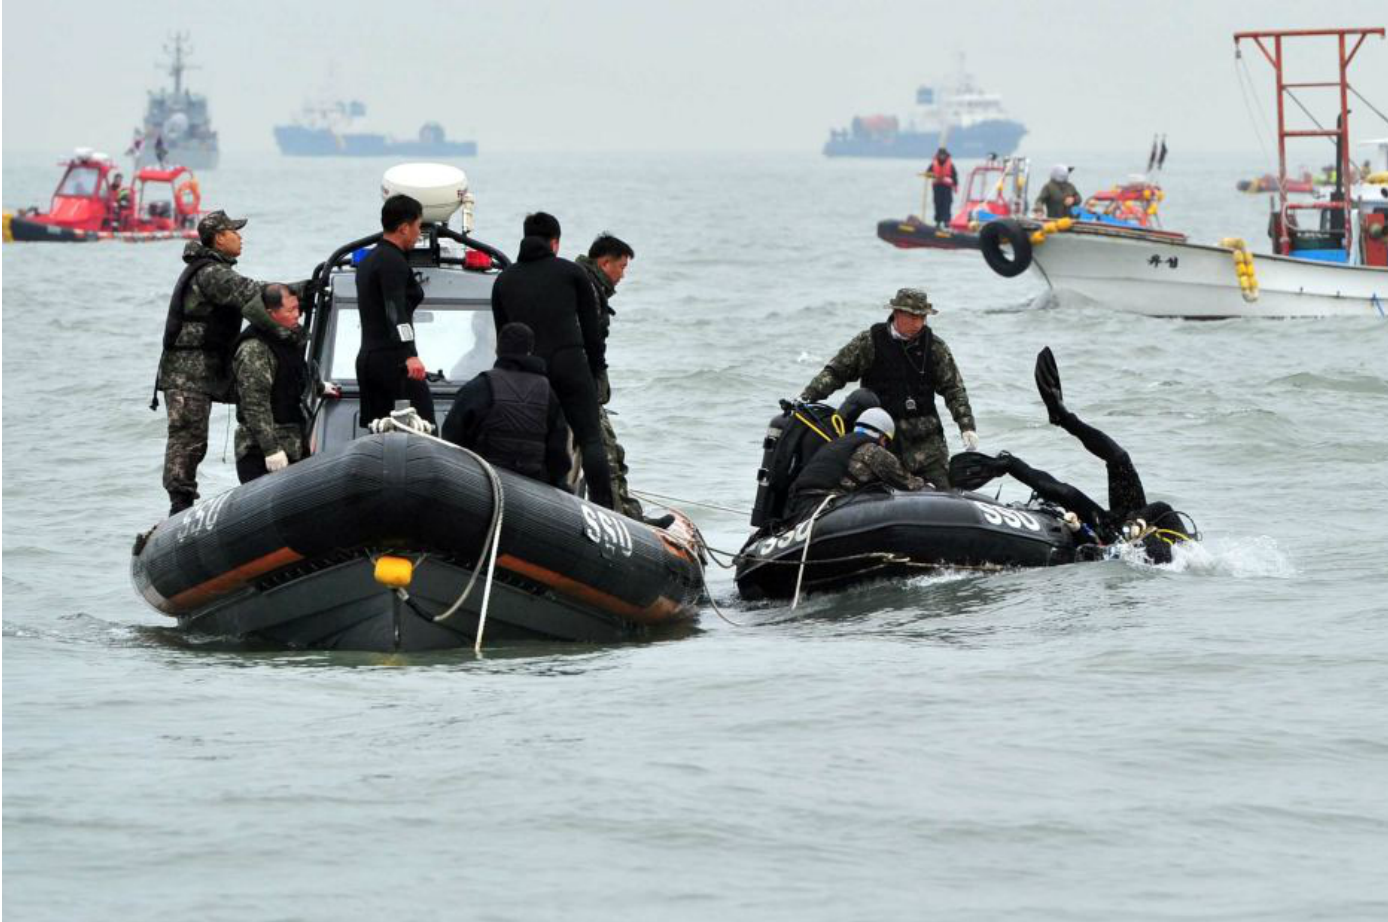 South Korea ferry disaster: Divers remove first bodies from Sewol vessel